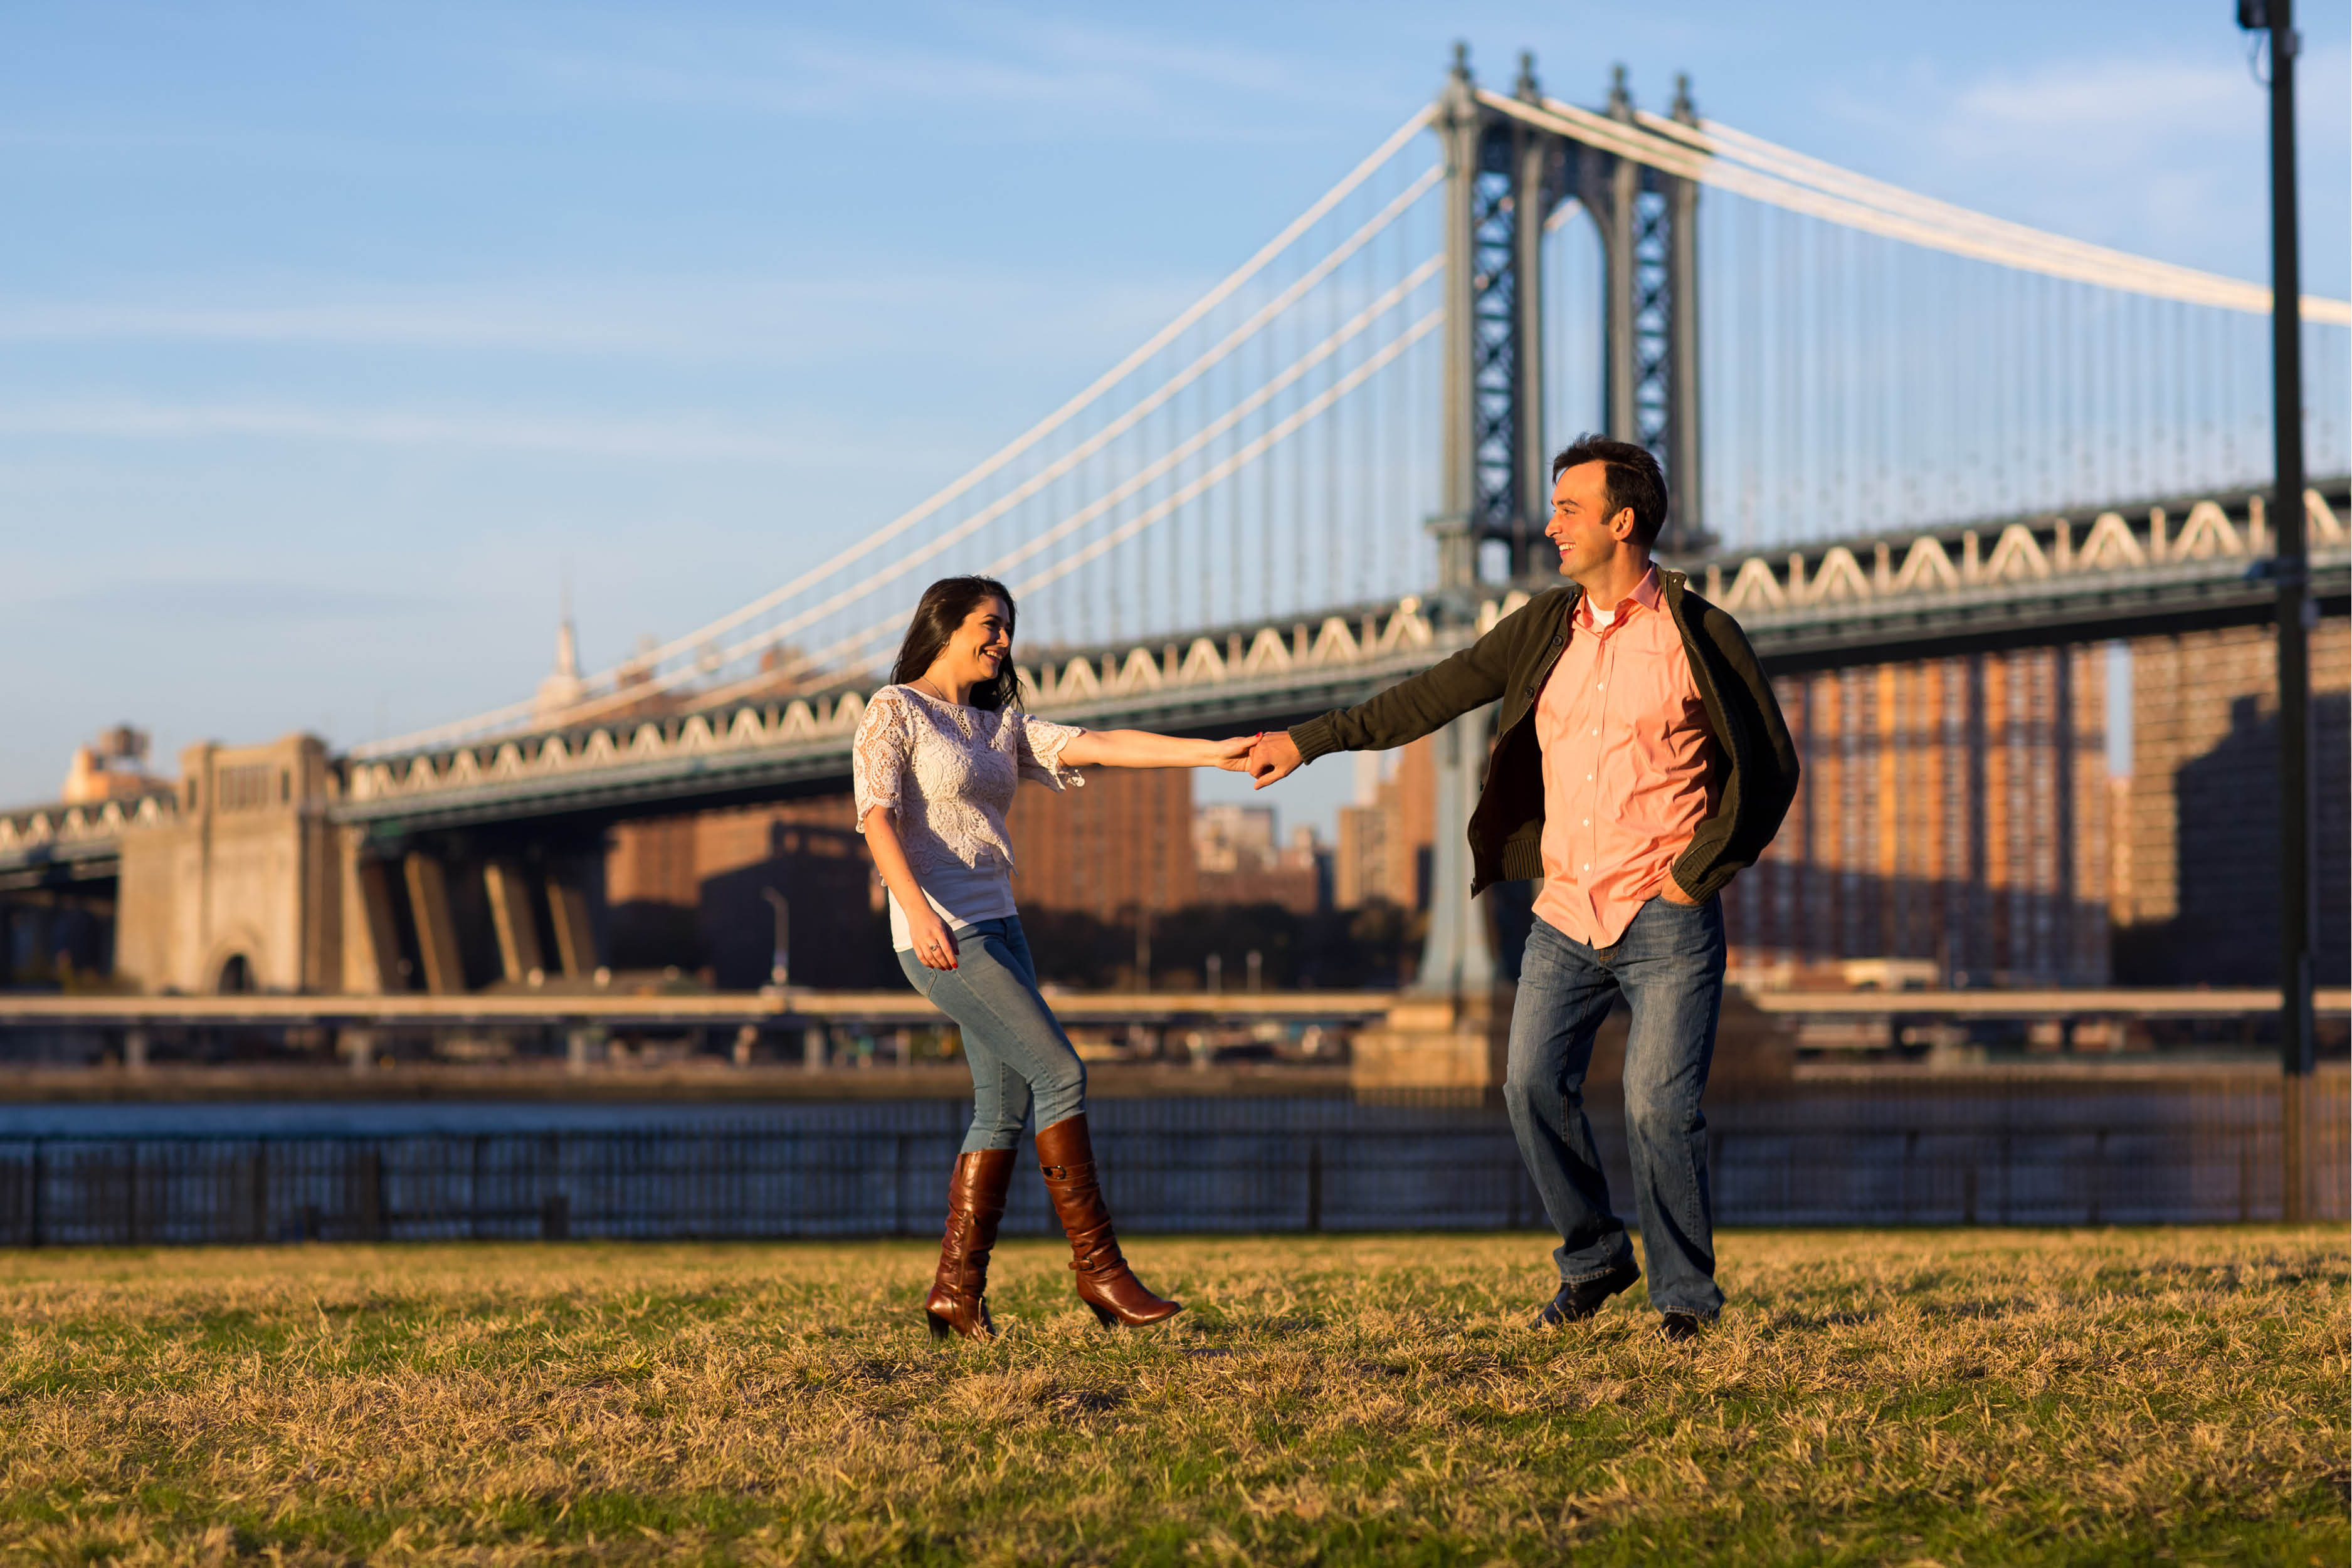 Emma_cleary_photography Dumbo Engagement shoot11